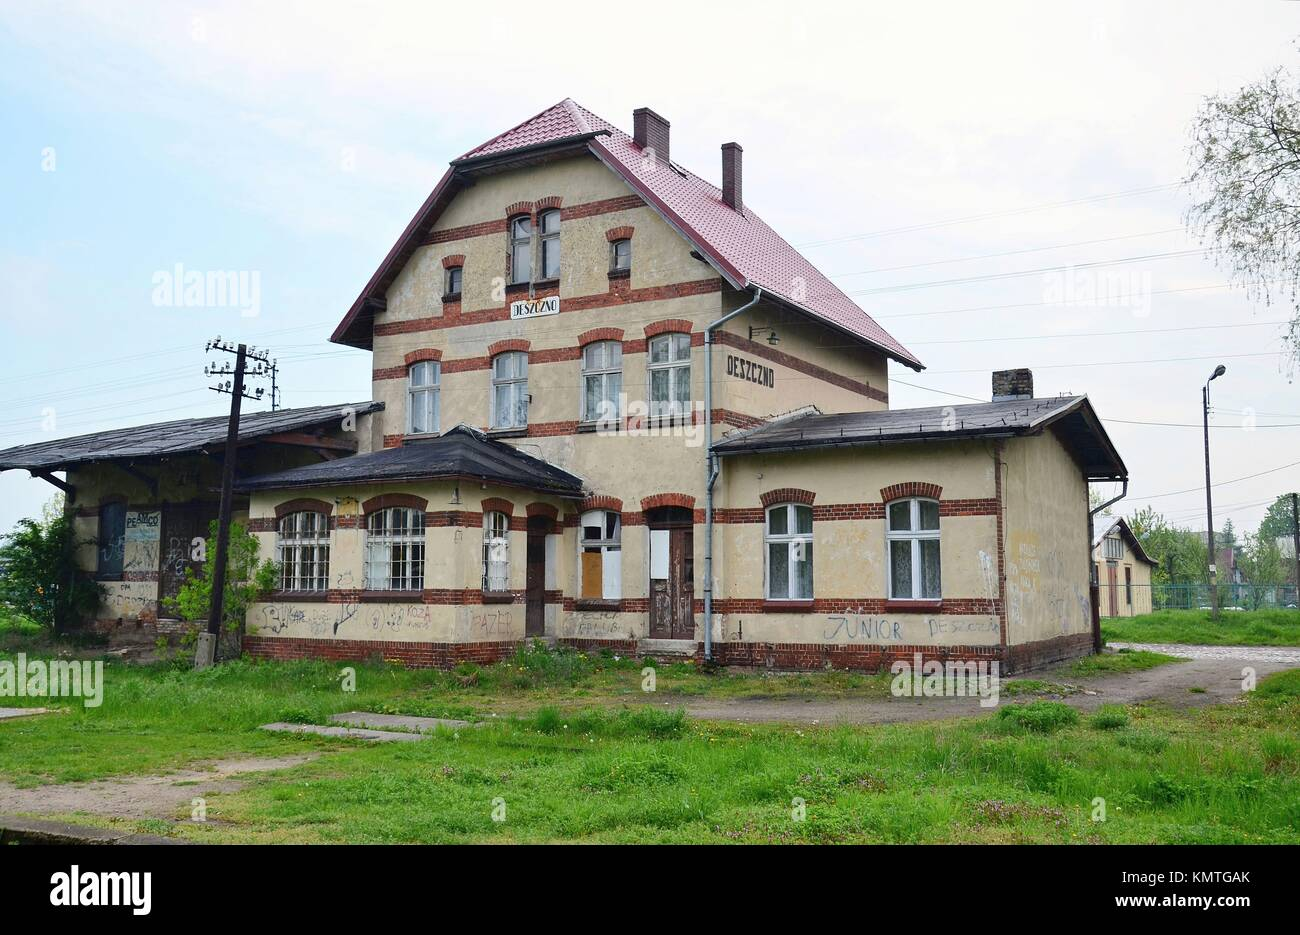 Tag railway stock photos tag railway stock images alamy for Depot bergedorf